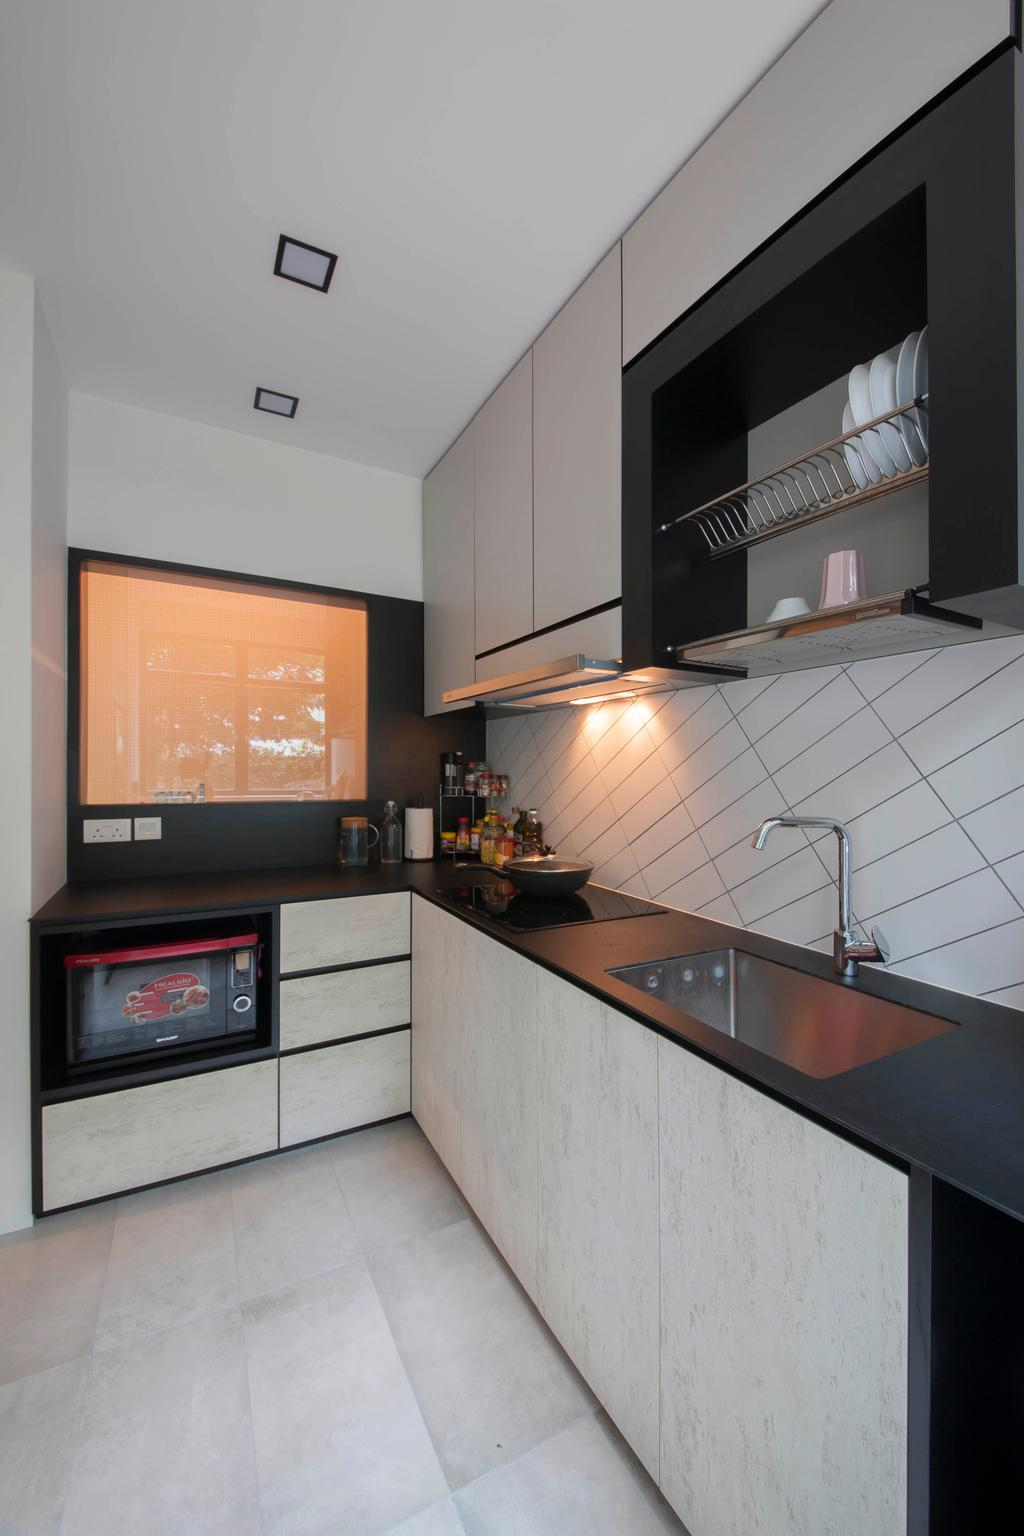 Contemporary, Condo, Kitchen, Evelyn Road, Interior Designer, Habit, Tiles, Oven, Sink, Tap, Kitchen Top, Kitchen Table Top, Table Top, White, Monochrome, Hood, Stove, Mesh, Hack, HDB, Building, Housing, Indoors, Loft